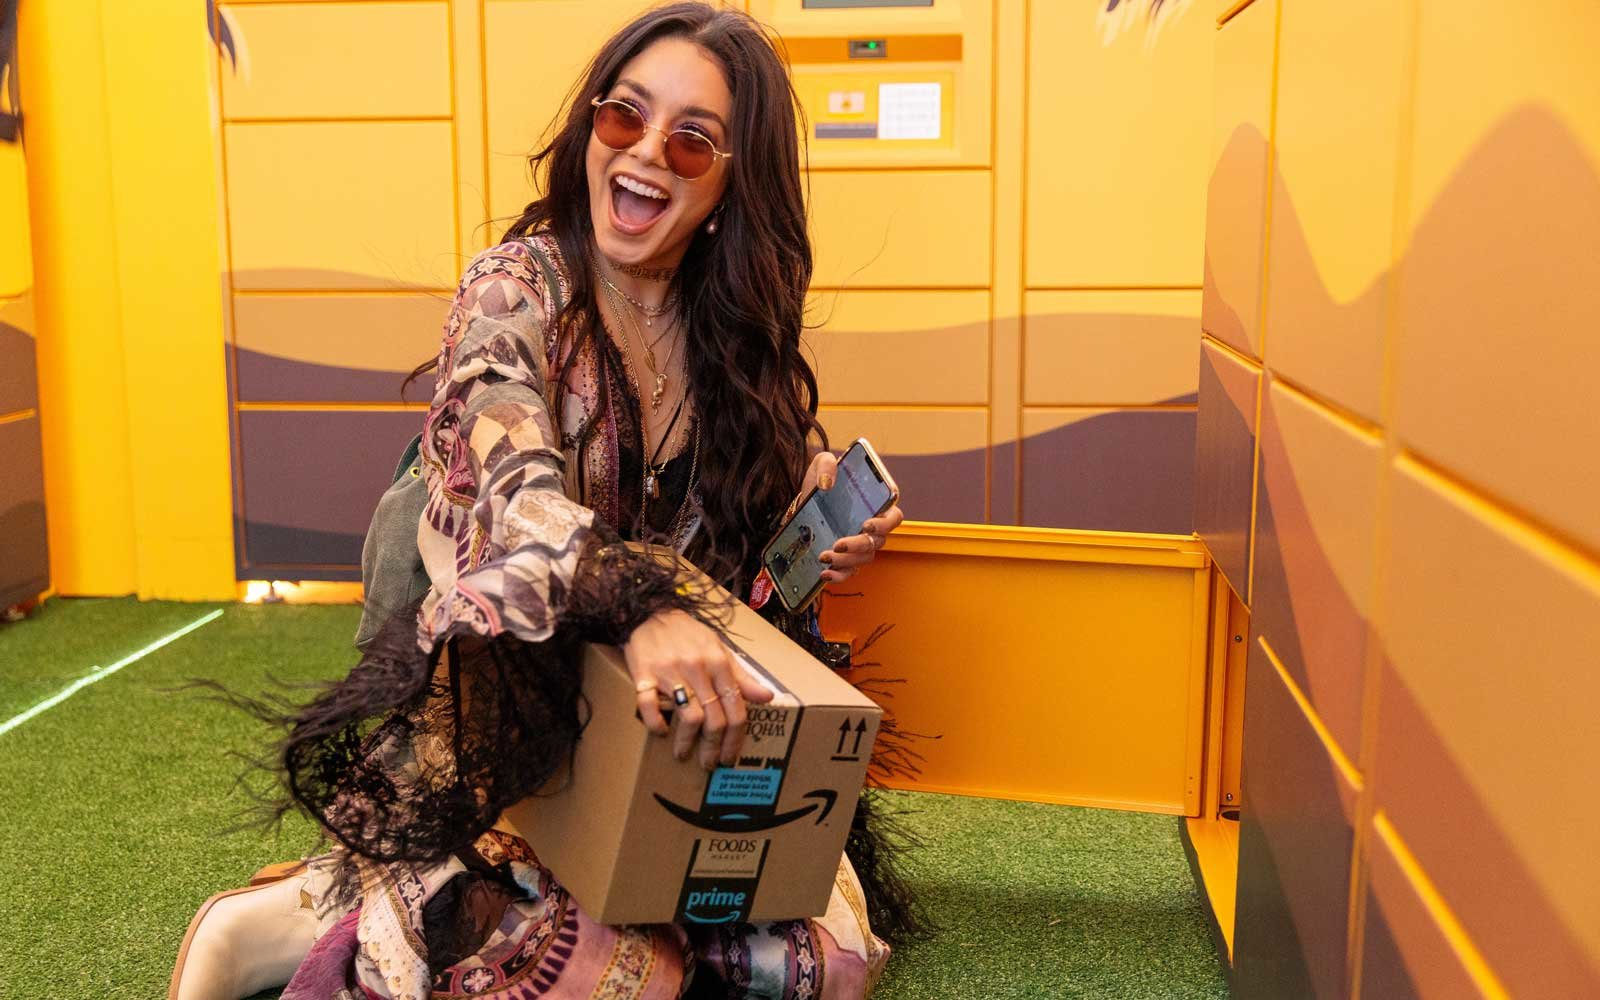 Amazon lockers at Coachella with Vanessa Hudgens